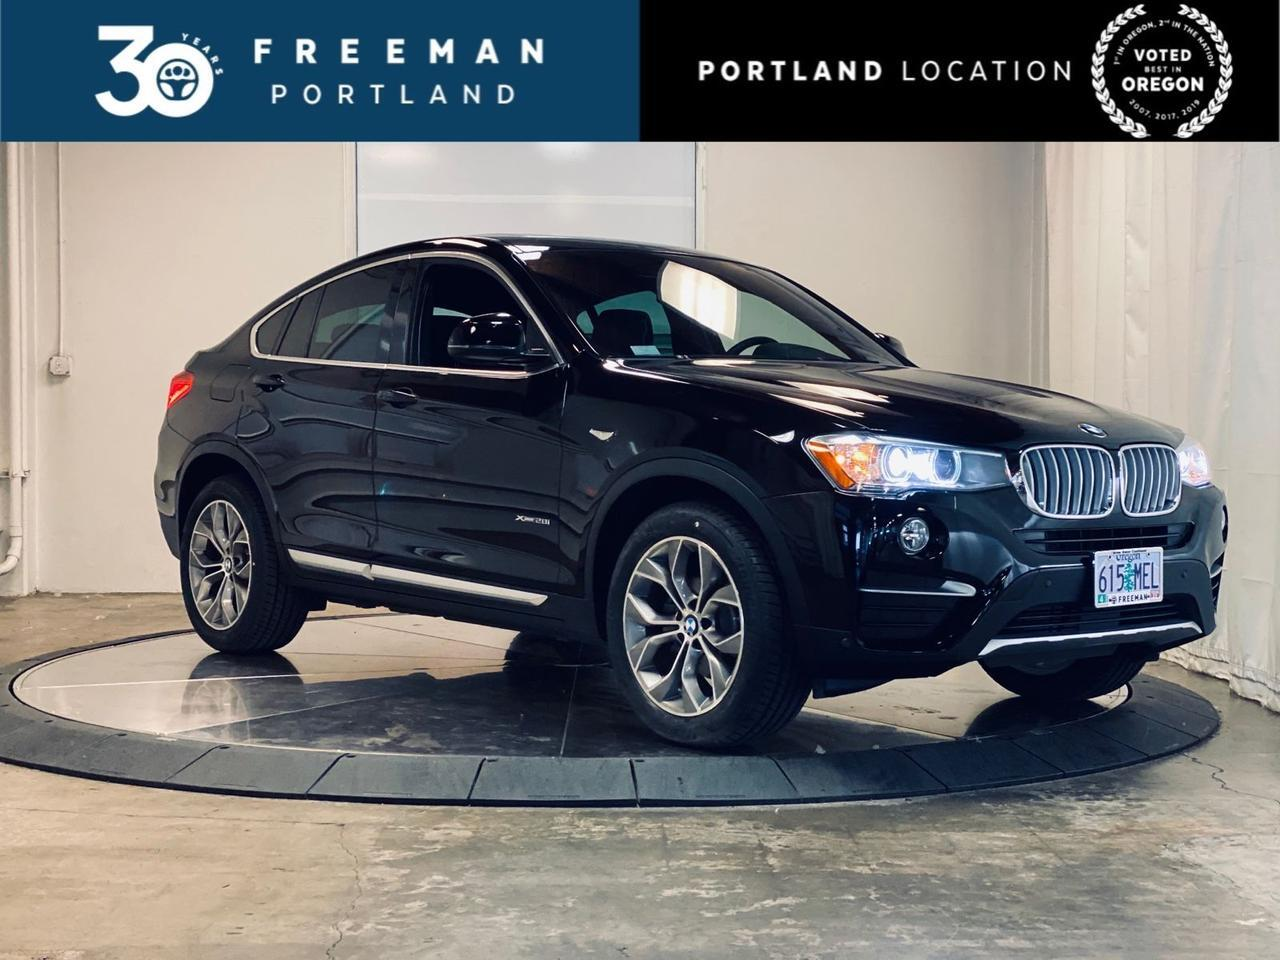 2018 BMW X4 xDrive28i Active Blind Spot Detection Apple CarPlay Portland OR